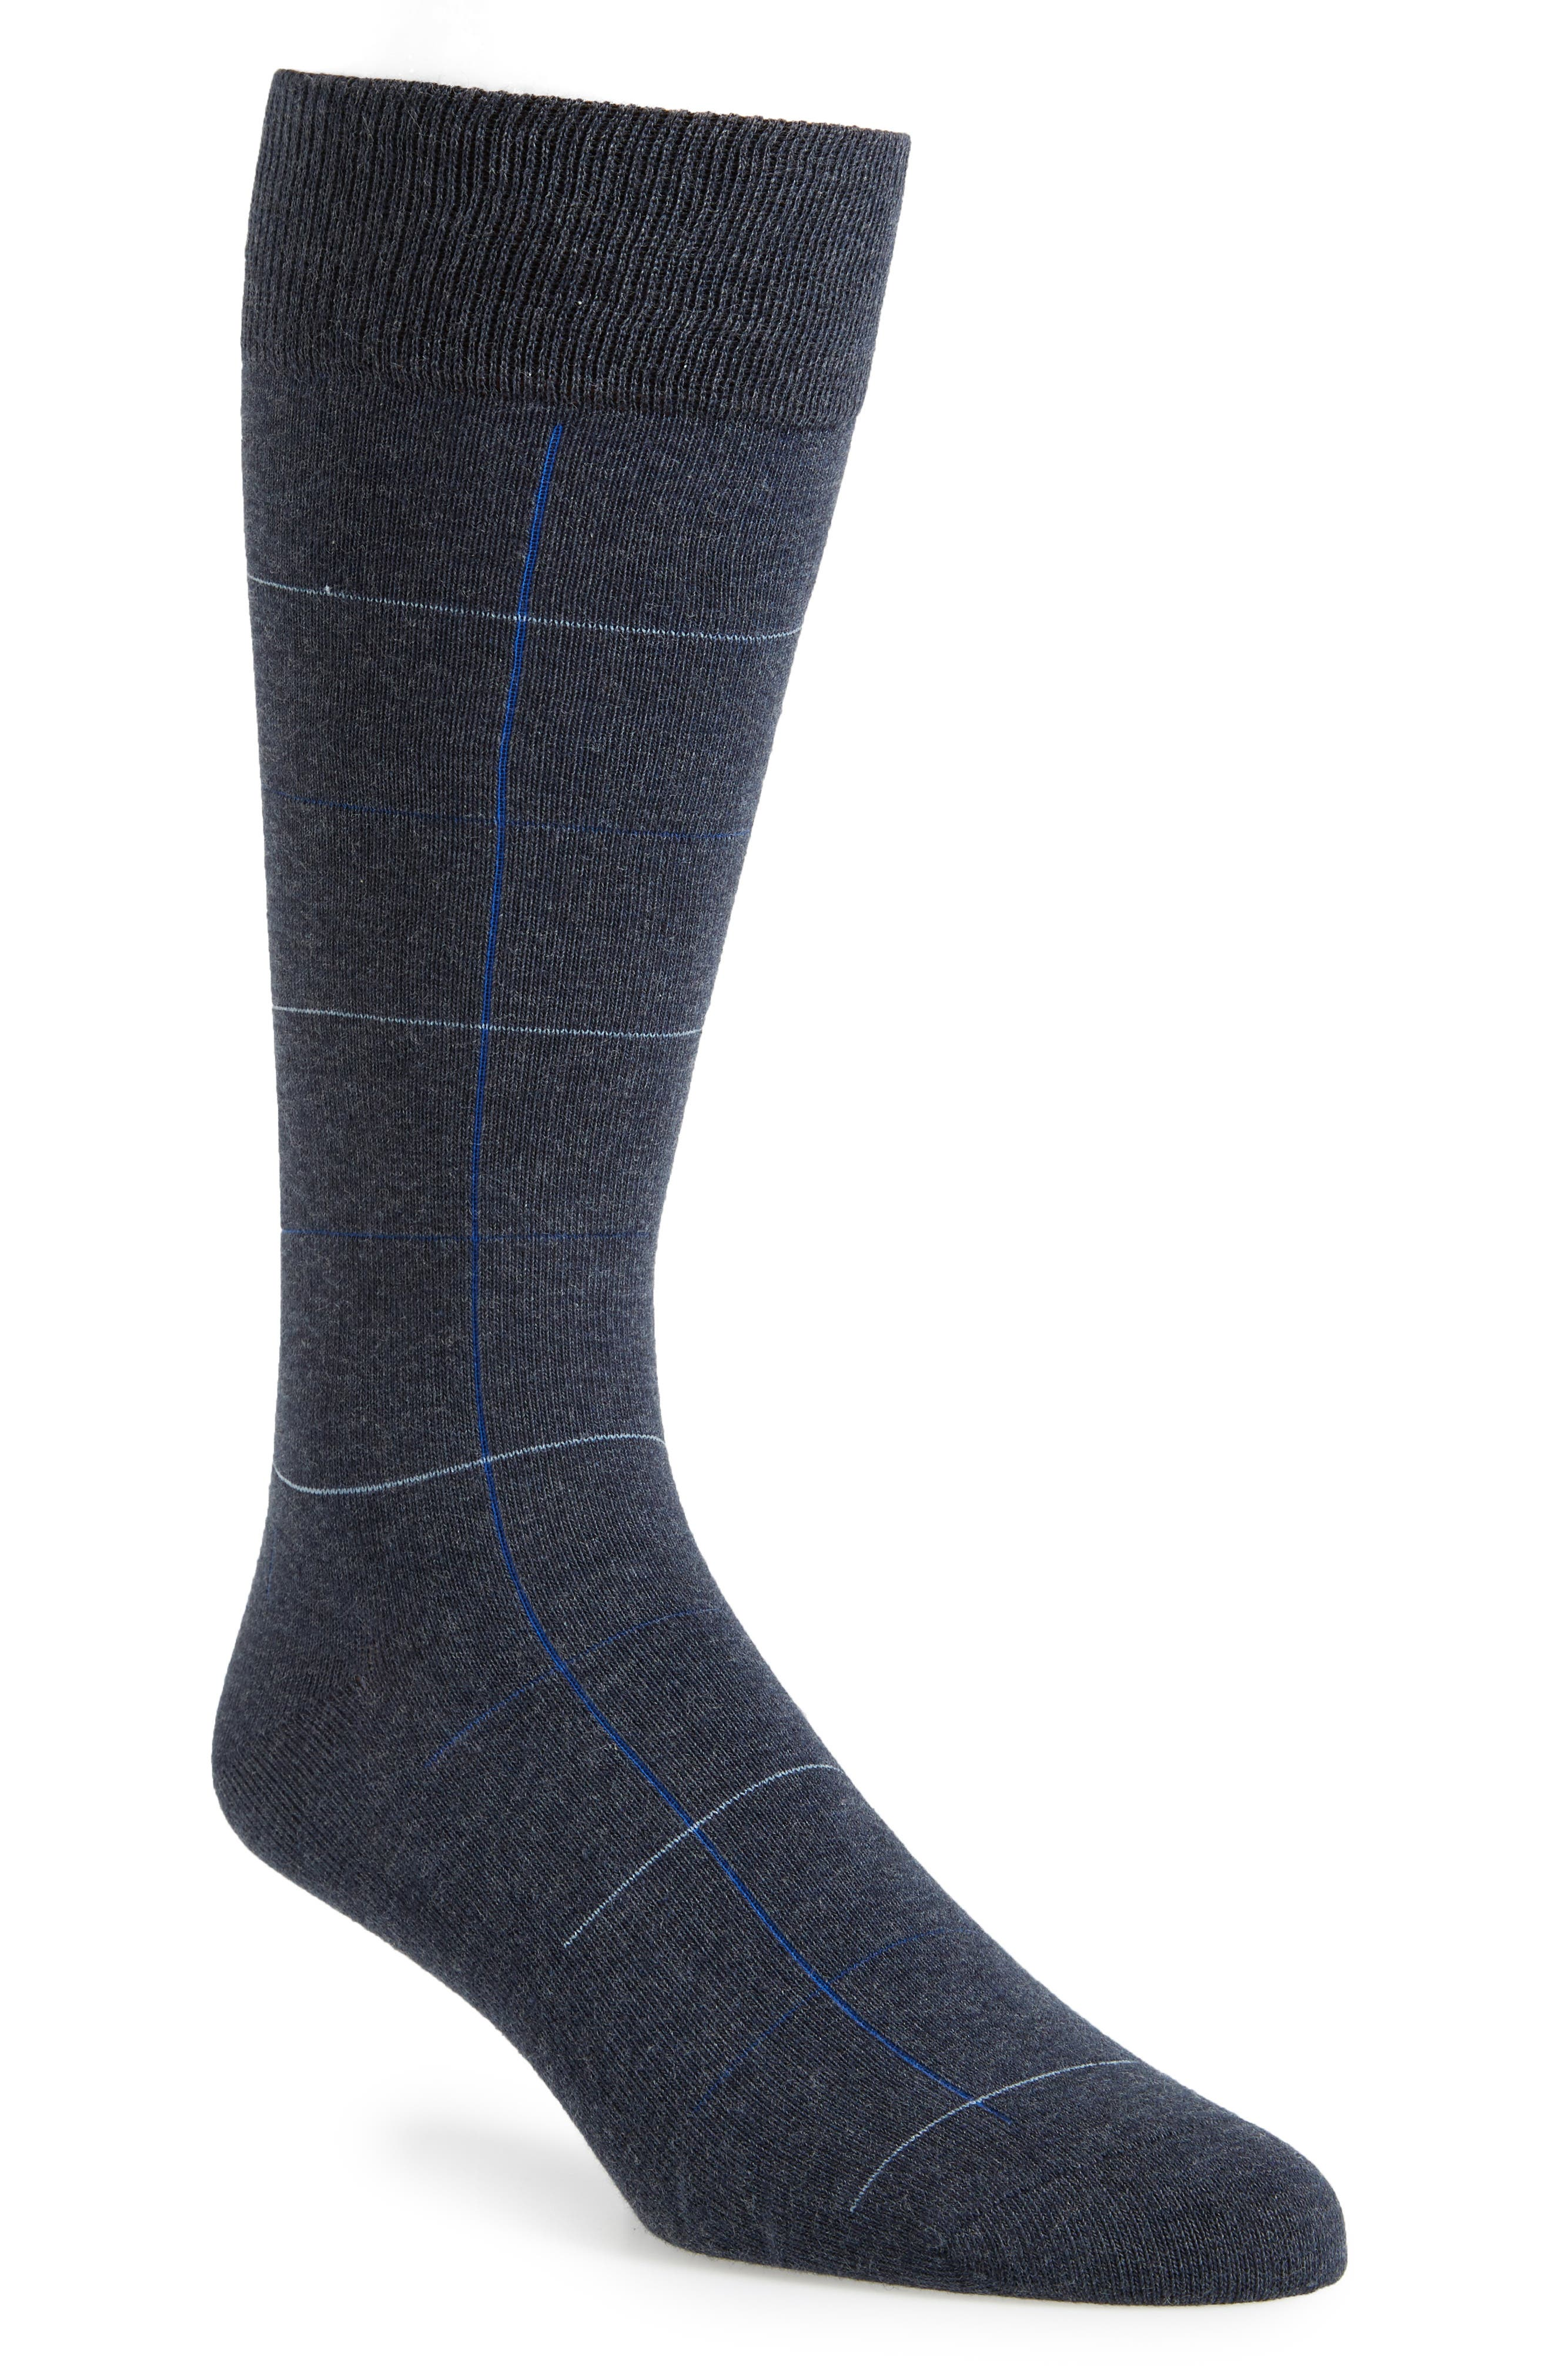 Check Socks,                         Main,                         color, Navy Heather